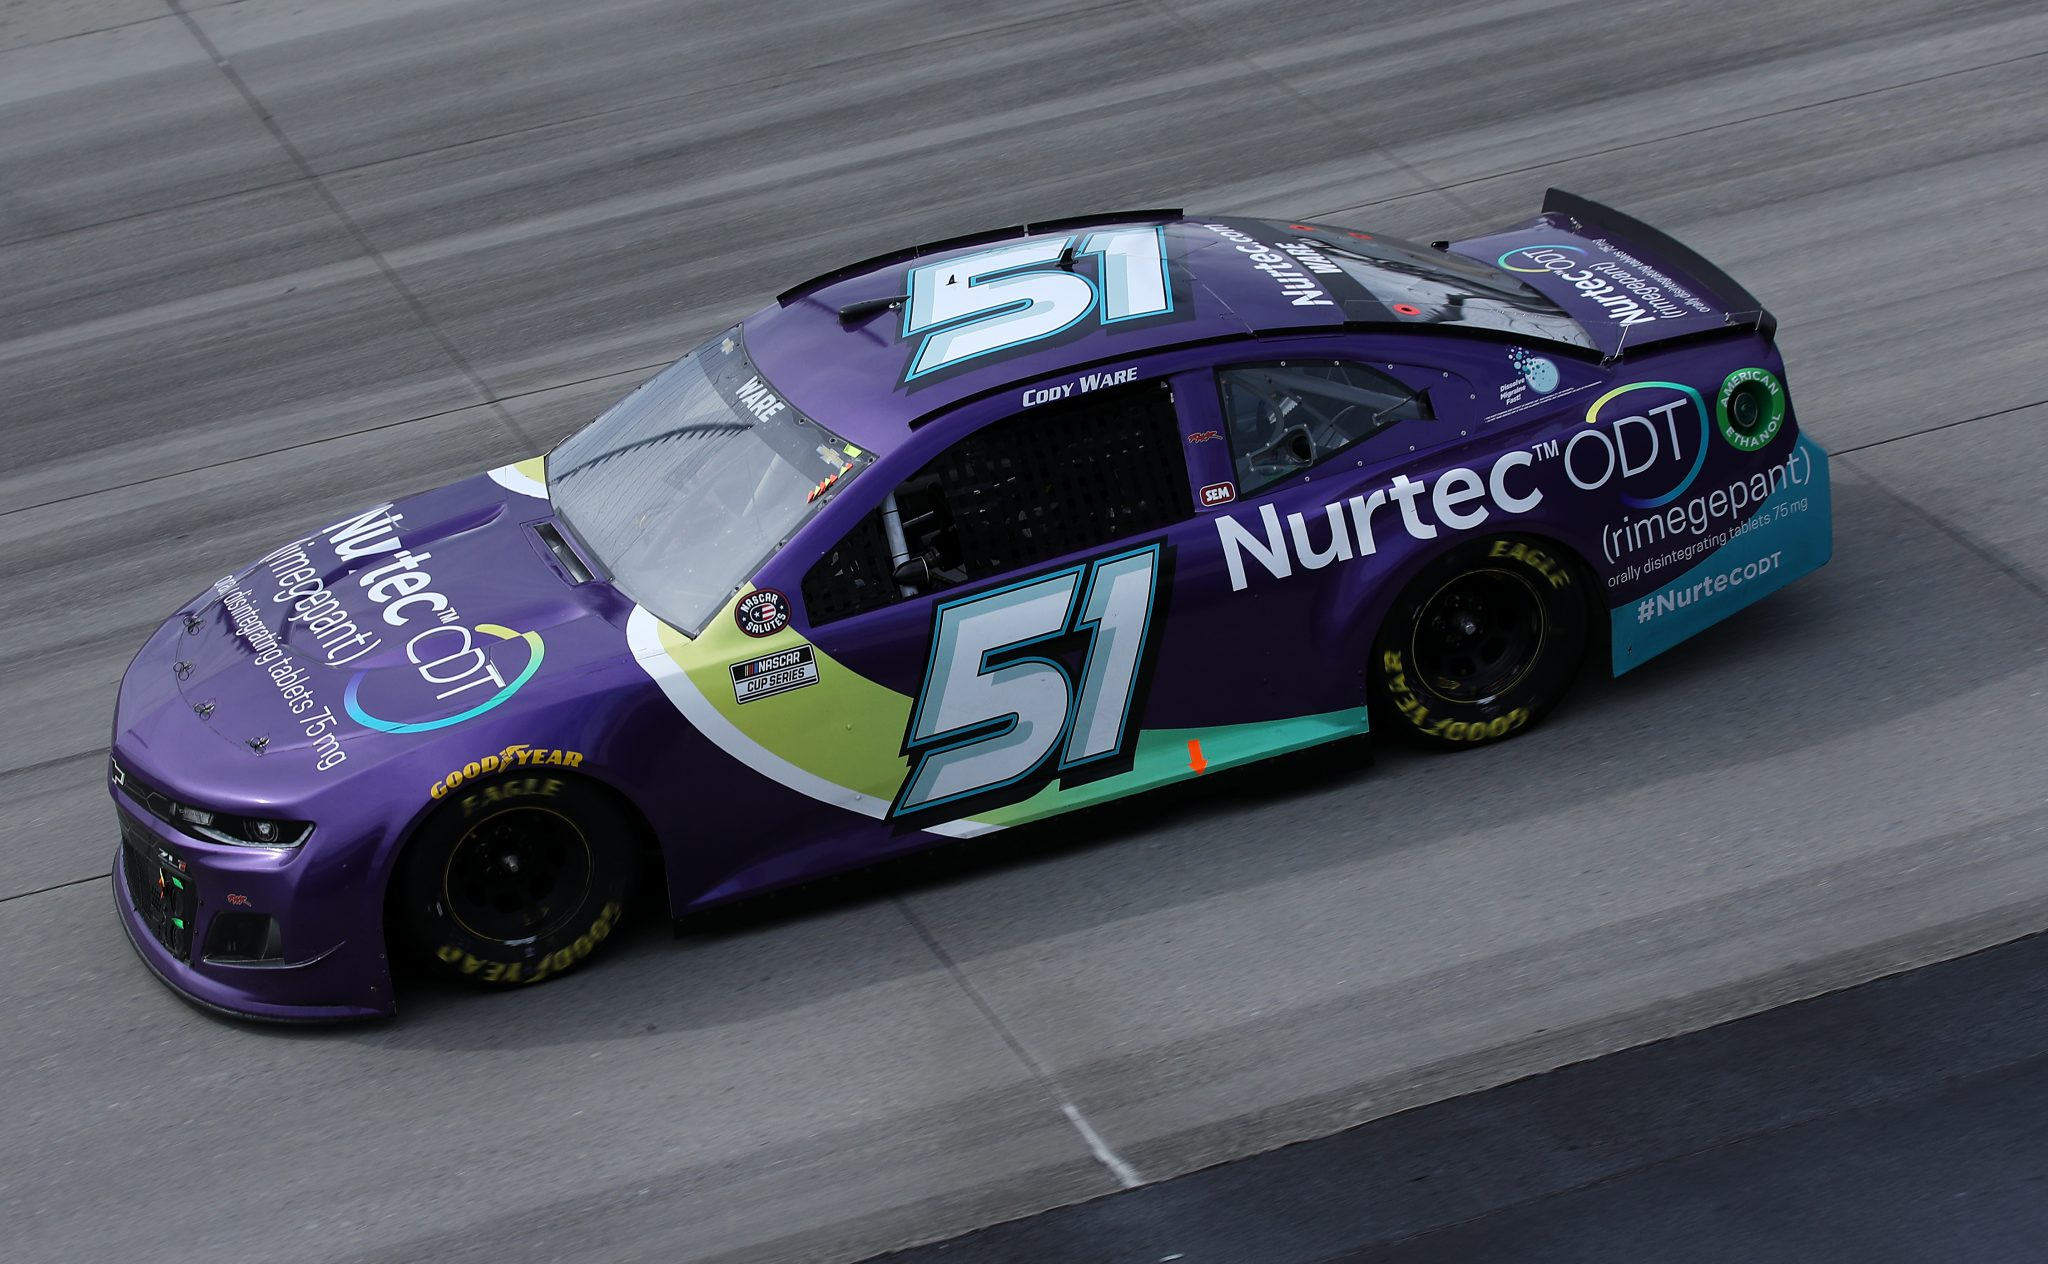 DOVER, DELAWARE - MAY 16: Cody Ware, driver of the #51 Petty Ware Racing Chevrolet, races during the NASCAR Cup Series Drydene 400 at Dover International Speedway on May 16, 2021 in Dover, Delaware. (Photo by Sean Gardner/Getty Images) | Getty Images